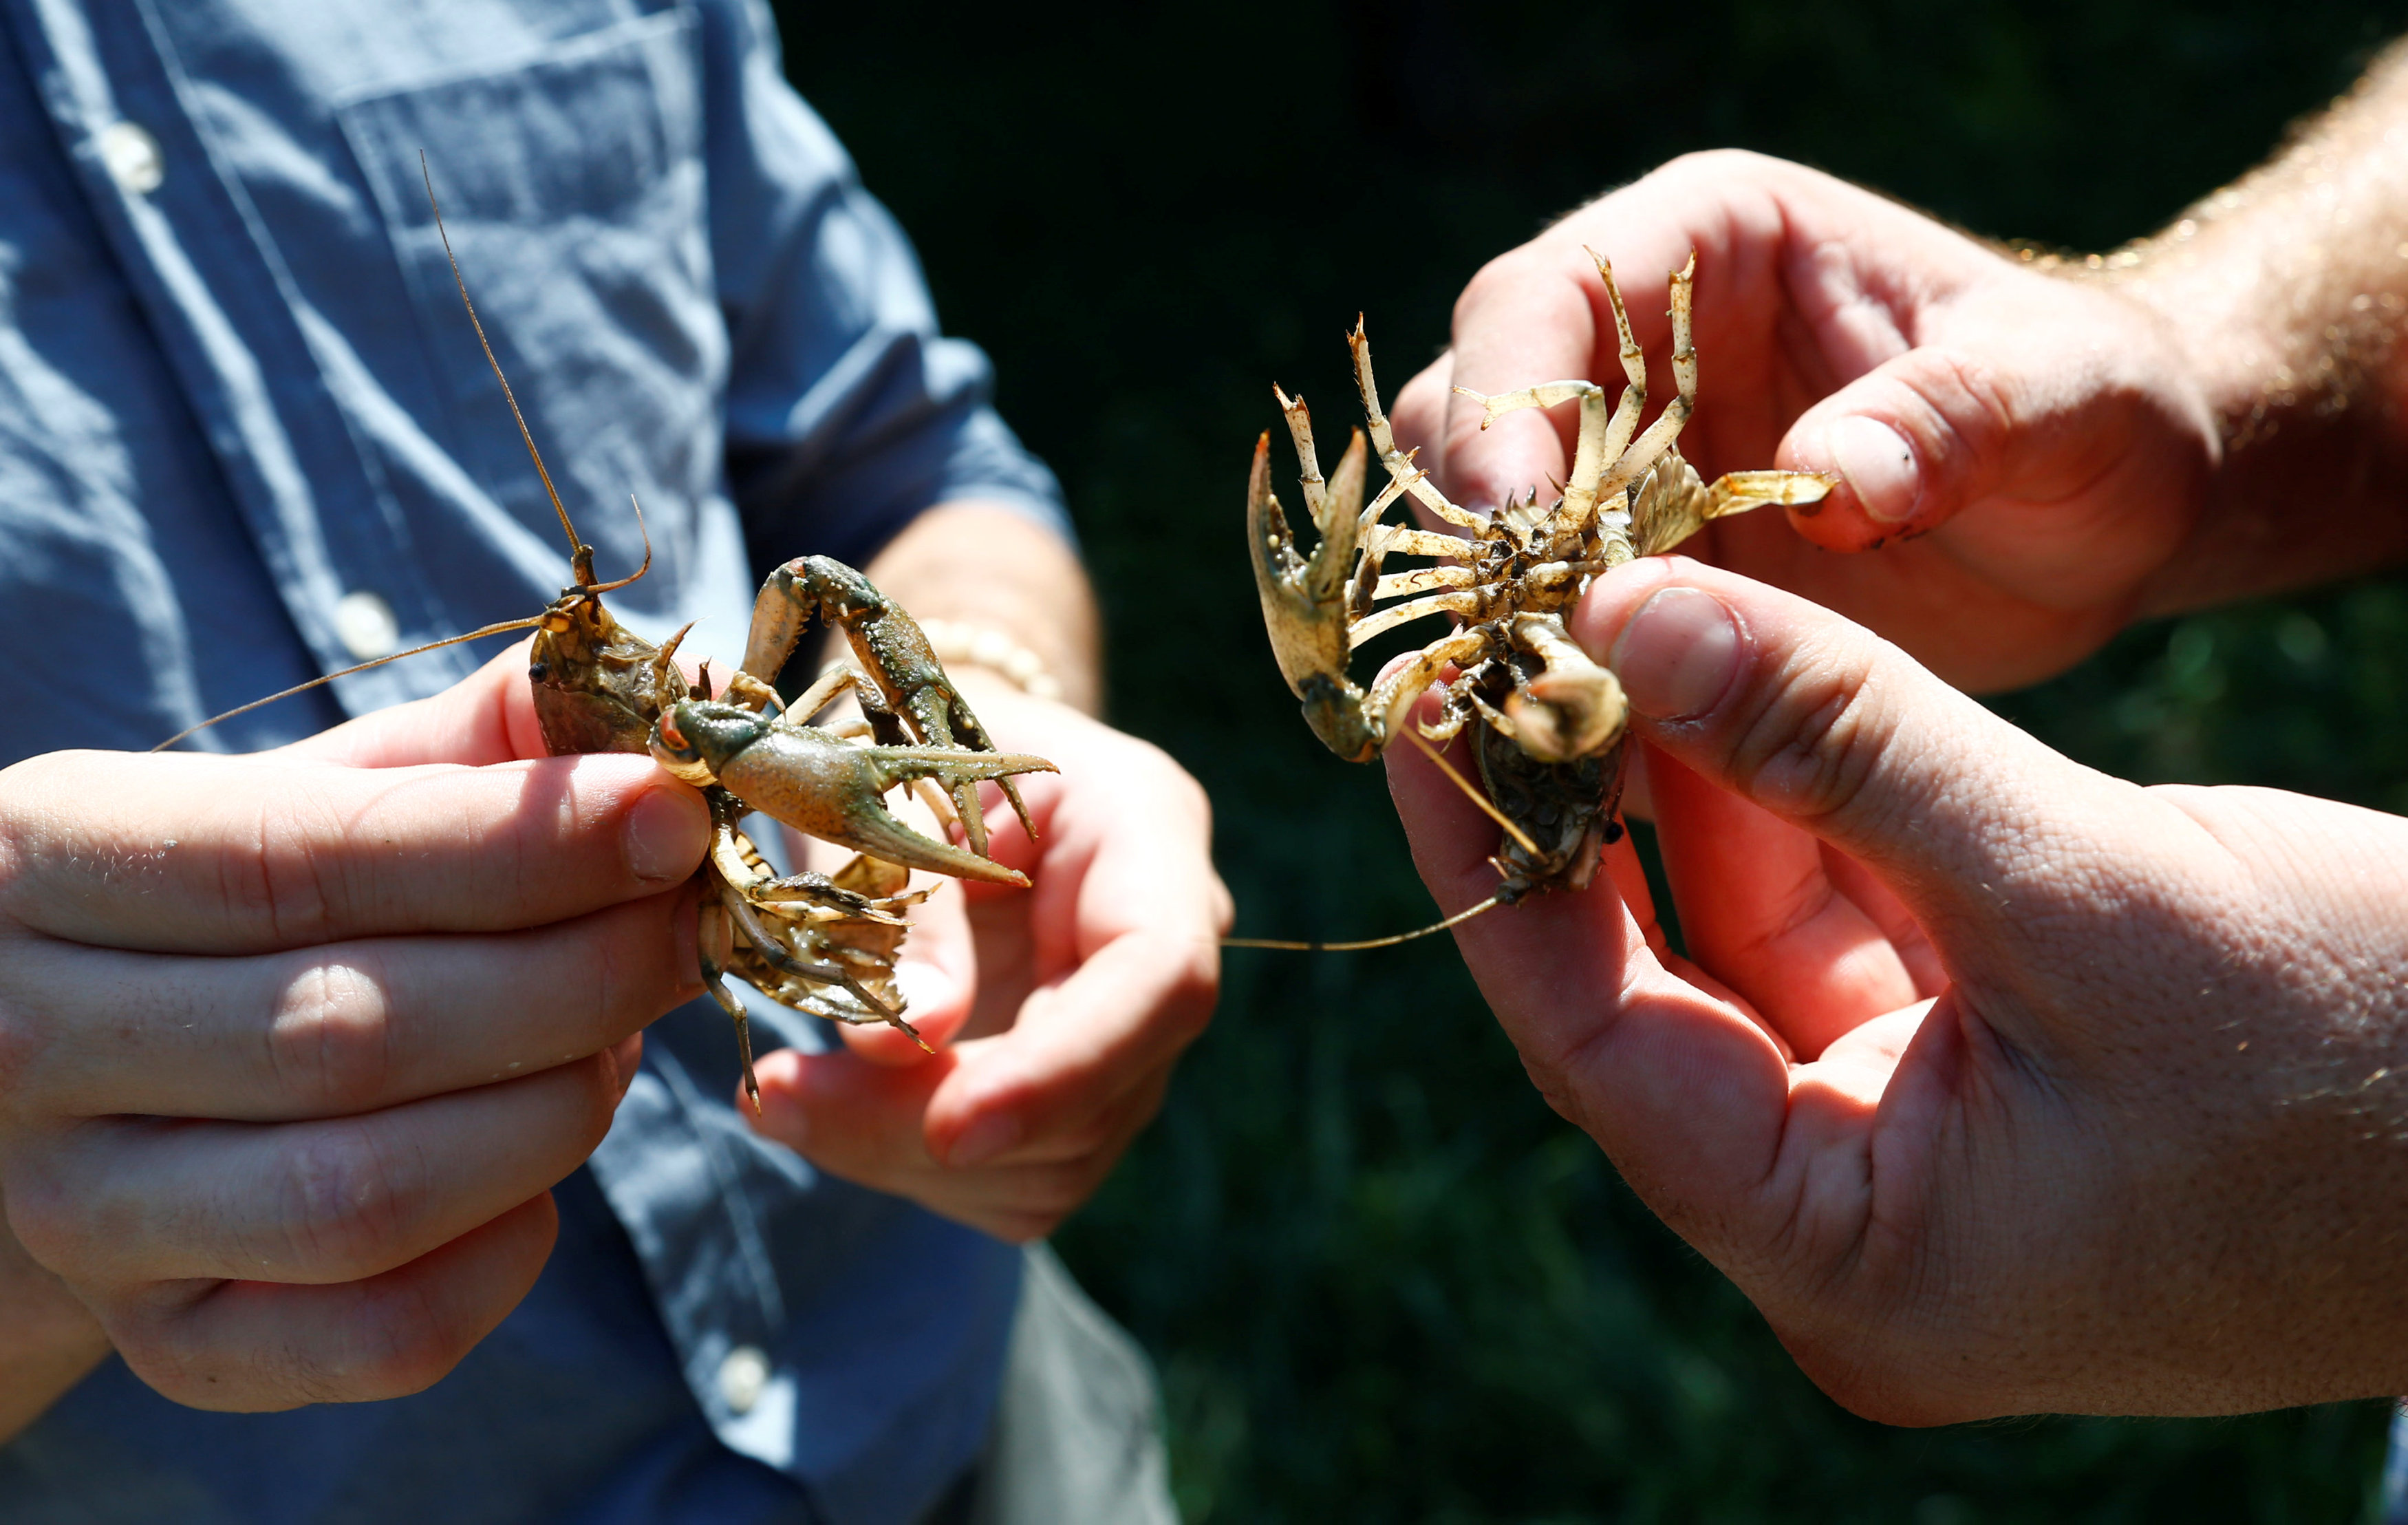 Andreas Stephan and Alexander Herrmann of the Karlsruhe University of Education hold calico crayfish (Orconectes immunis) in Rheinstetten